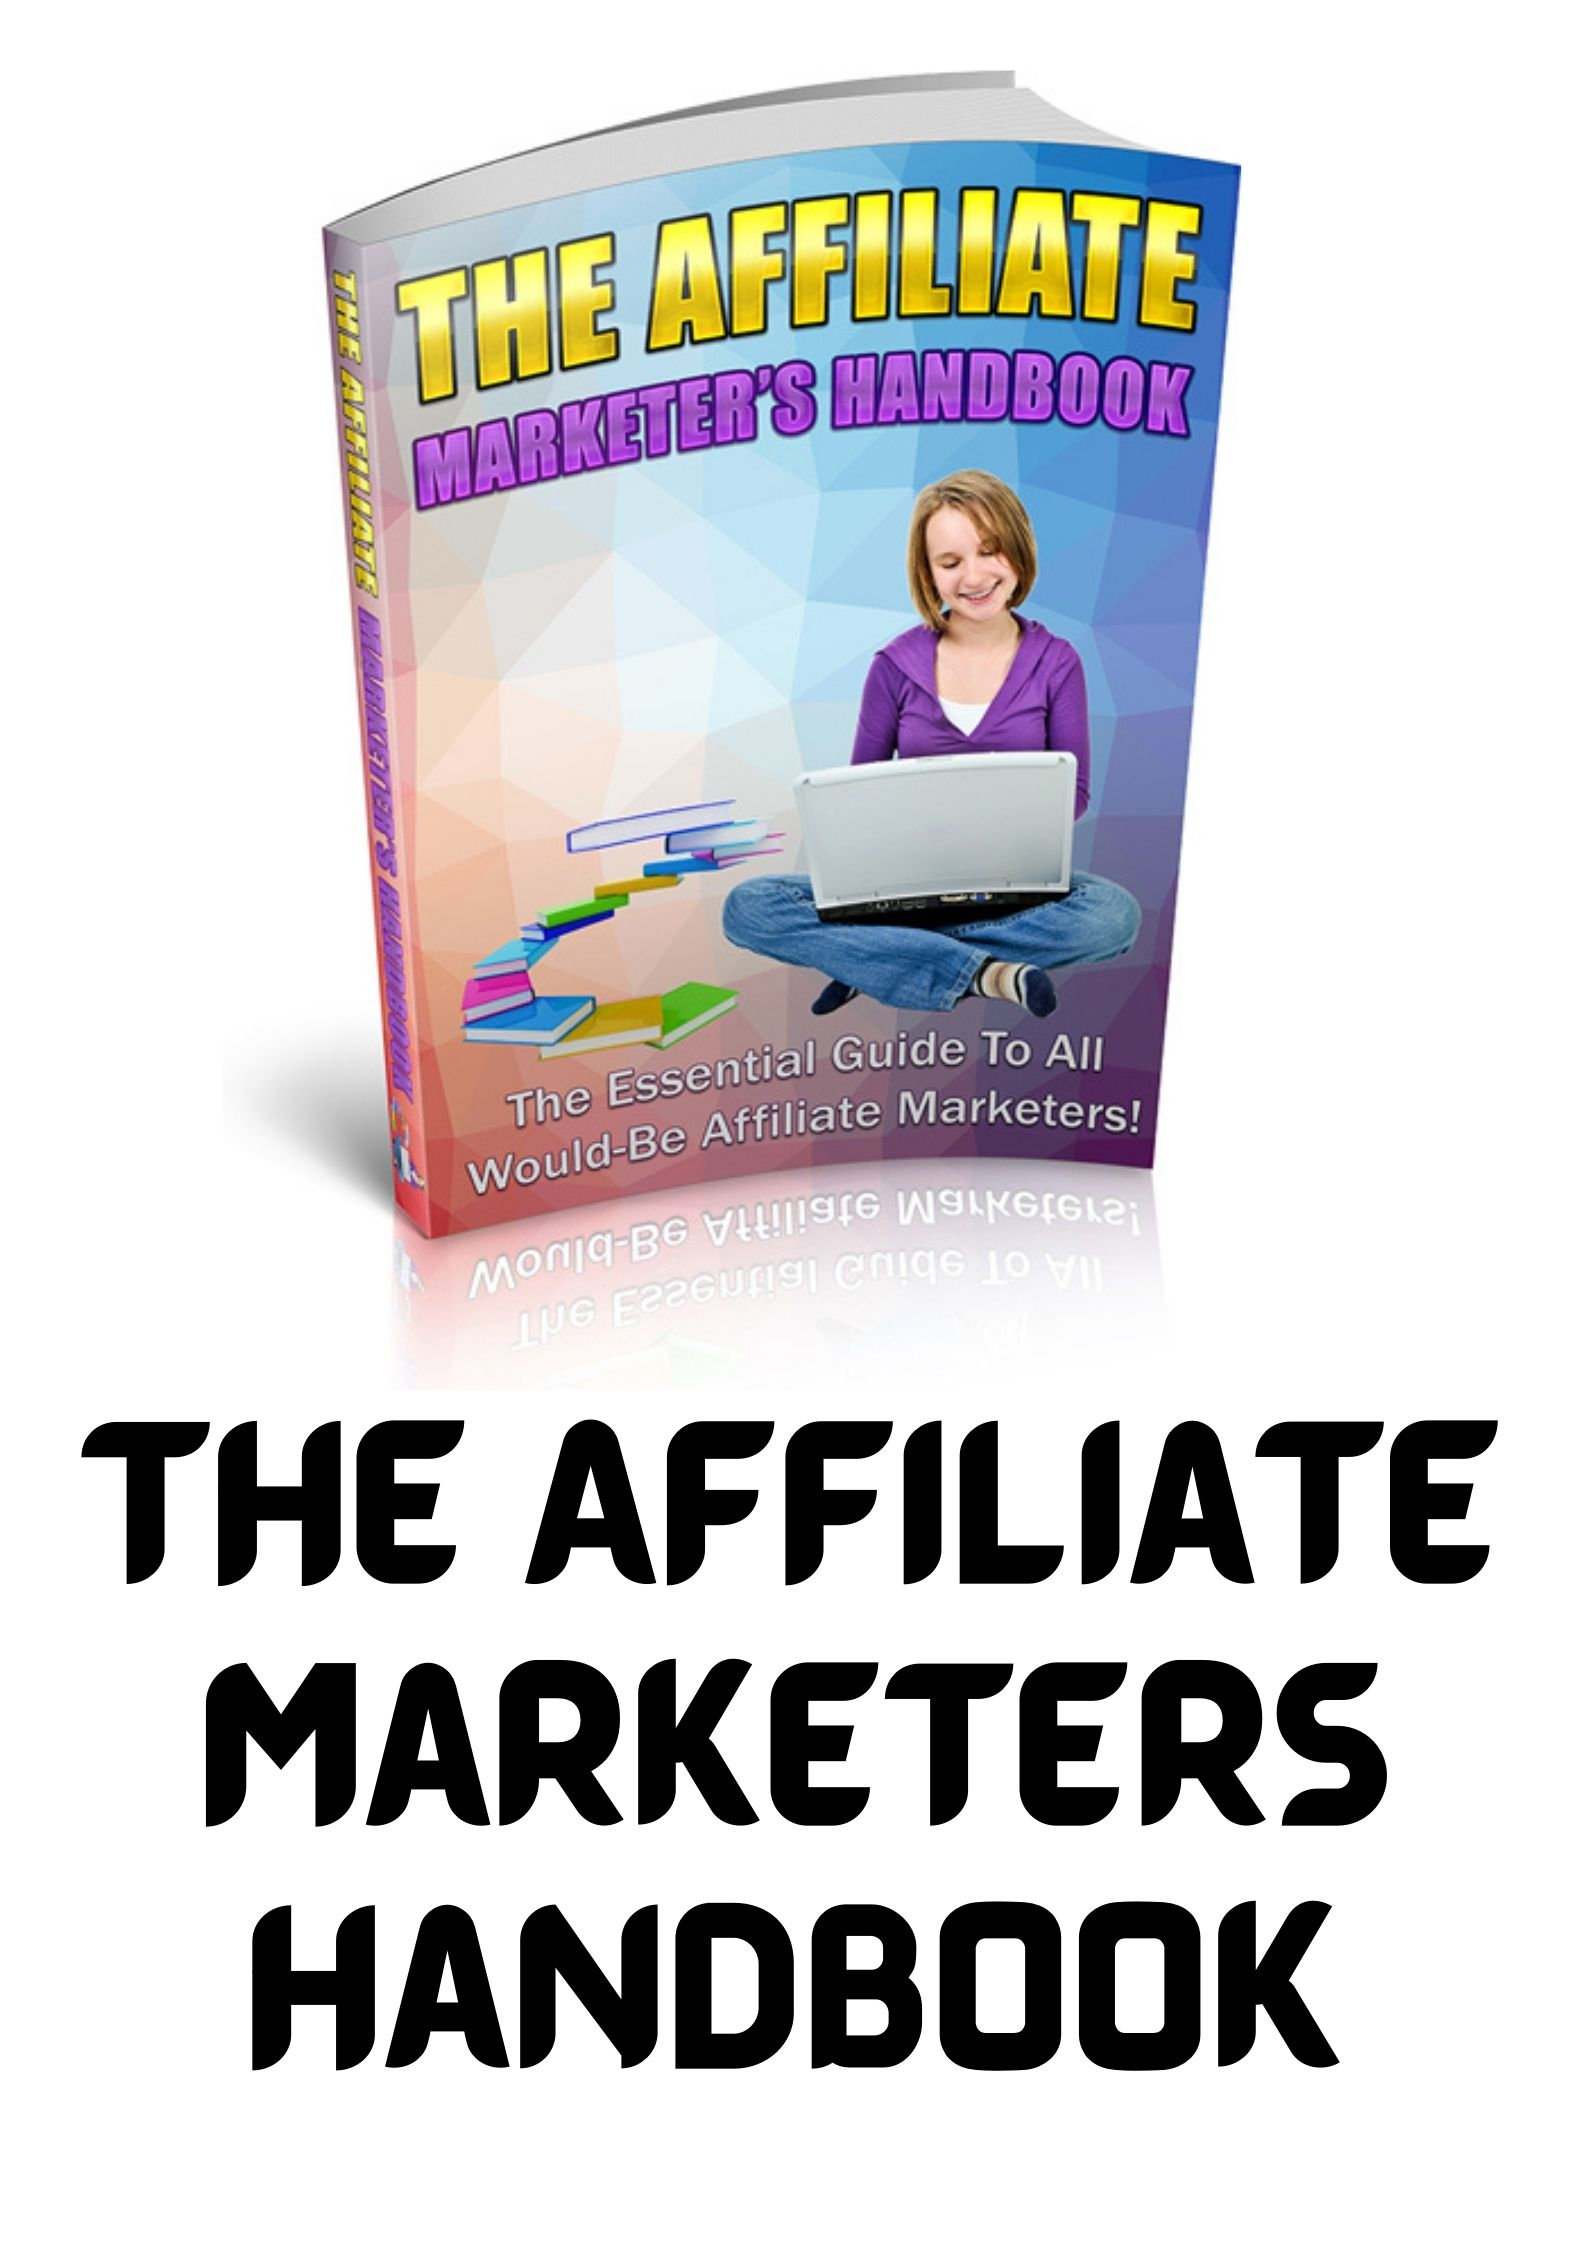 The Affiliate Marketers Handbook The Affiliate Marketers Handbook